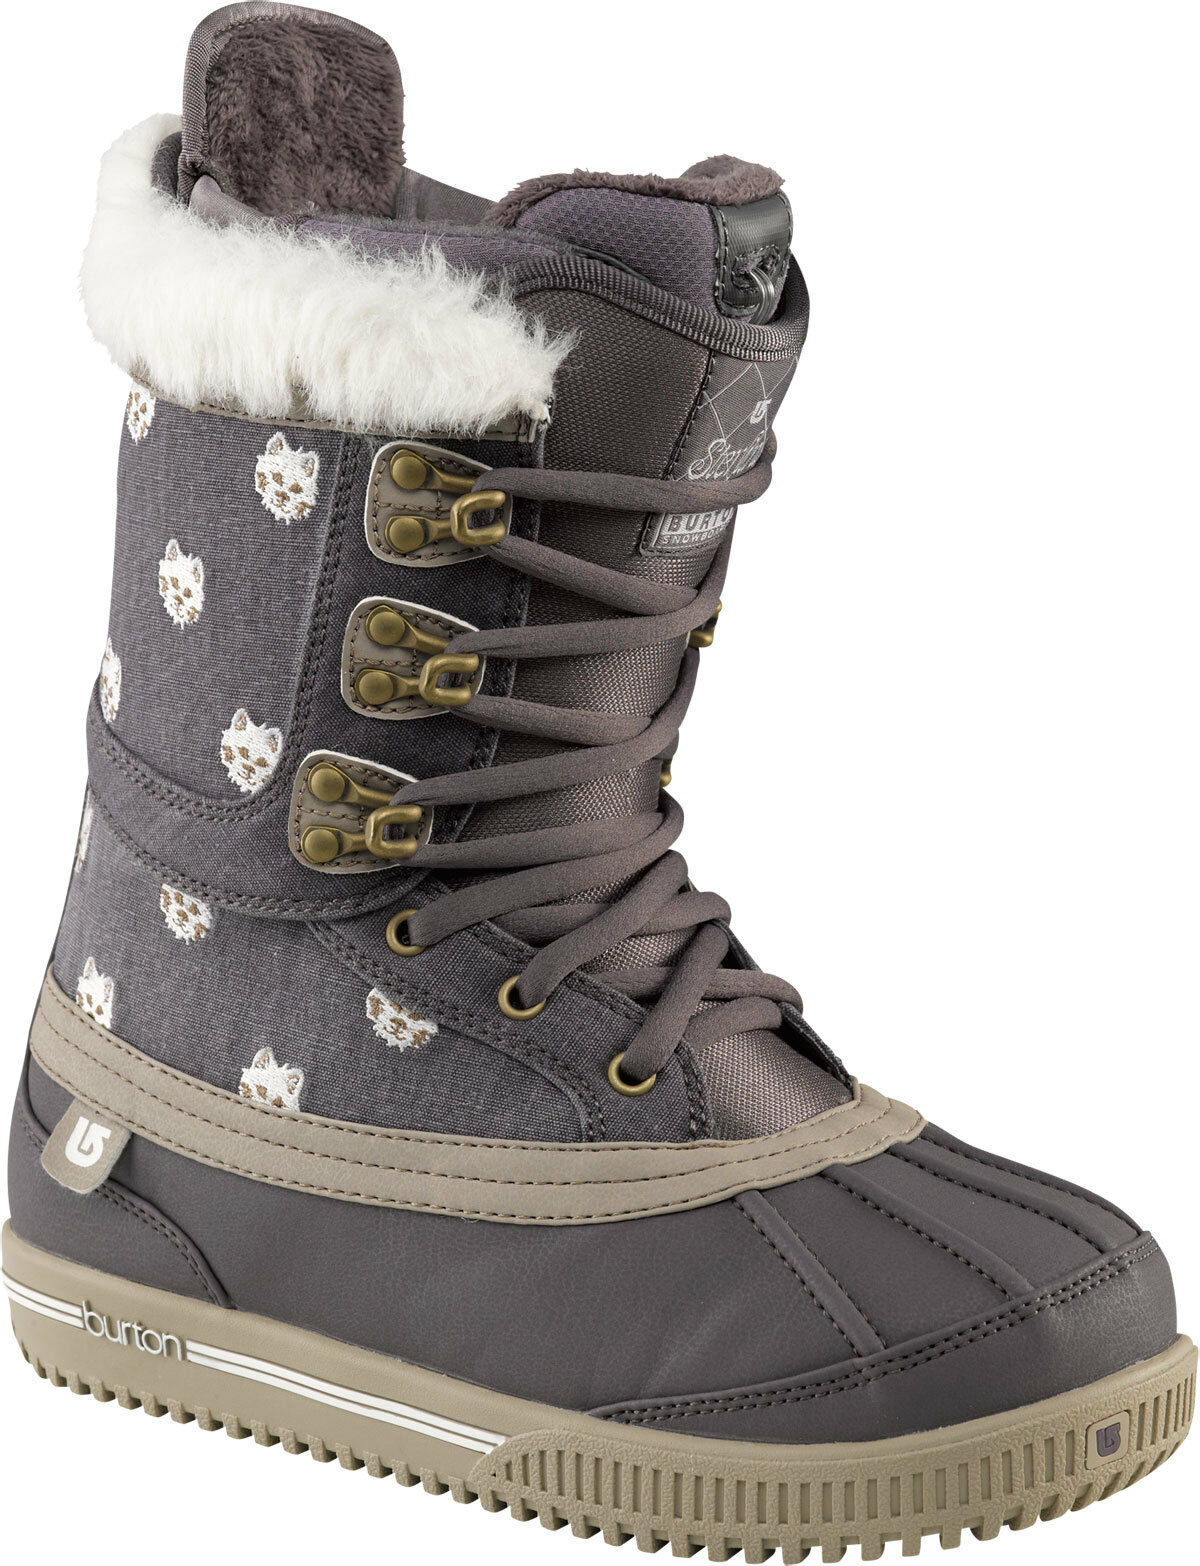 BURTON STERLING WOMEN'S SNOWBOARD BOOT - COLOR  LAVENDER - SIZE  6- BRAND NEW